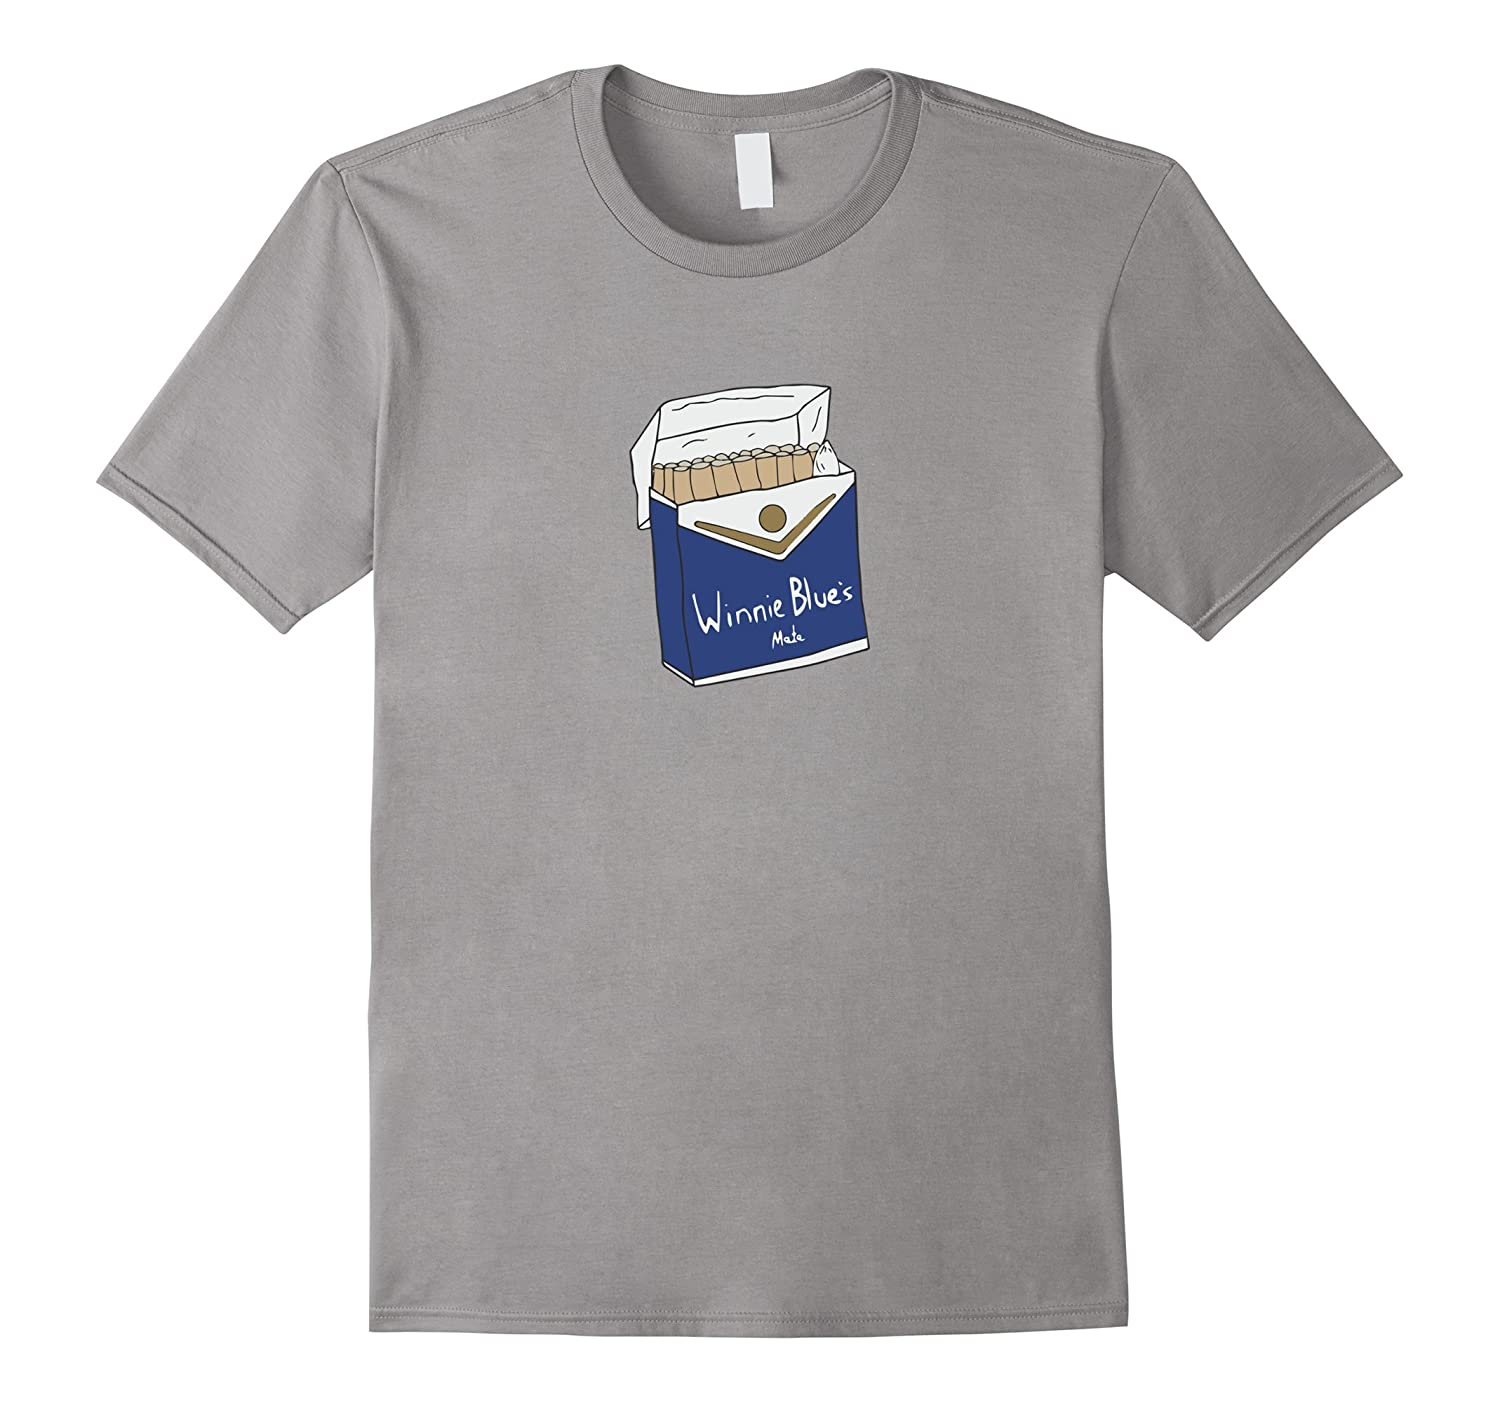 Winnie Blues Mate - Funny cigarette packet T-shirt-CD